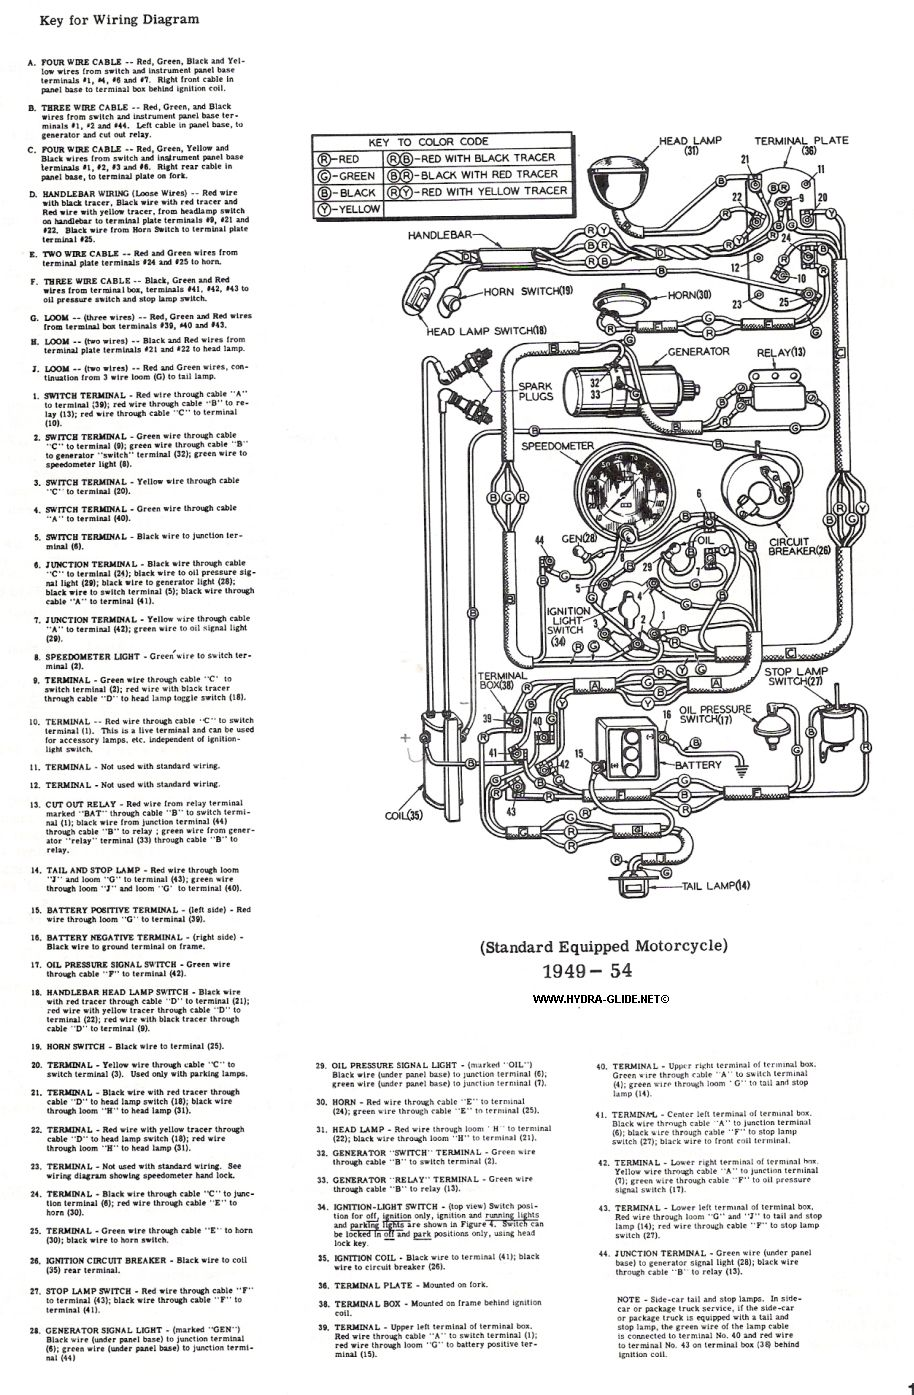 1949 - 1954 Wiring diagram Harley Davidson Battery Wiring Diagram on